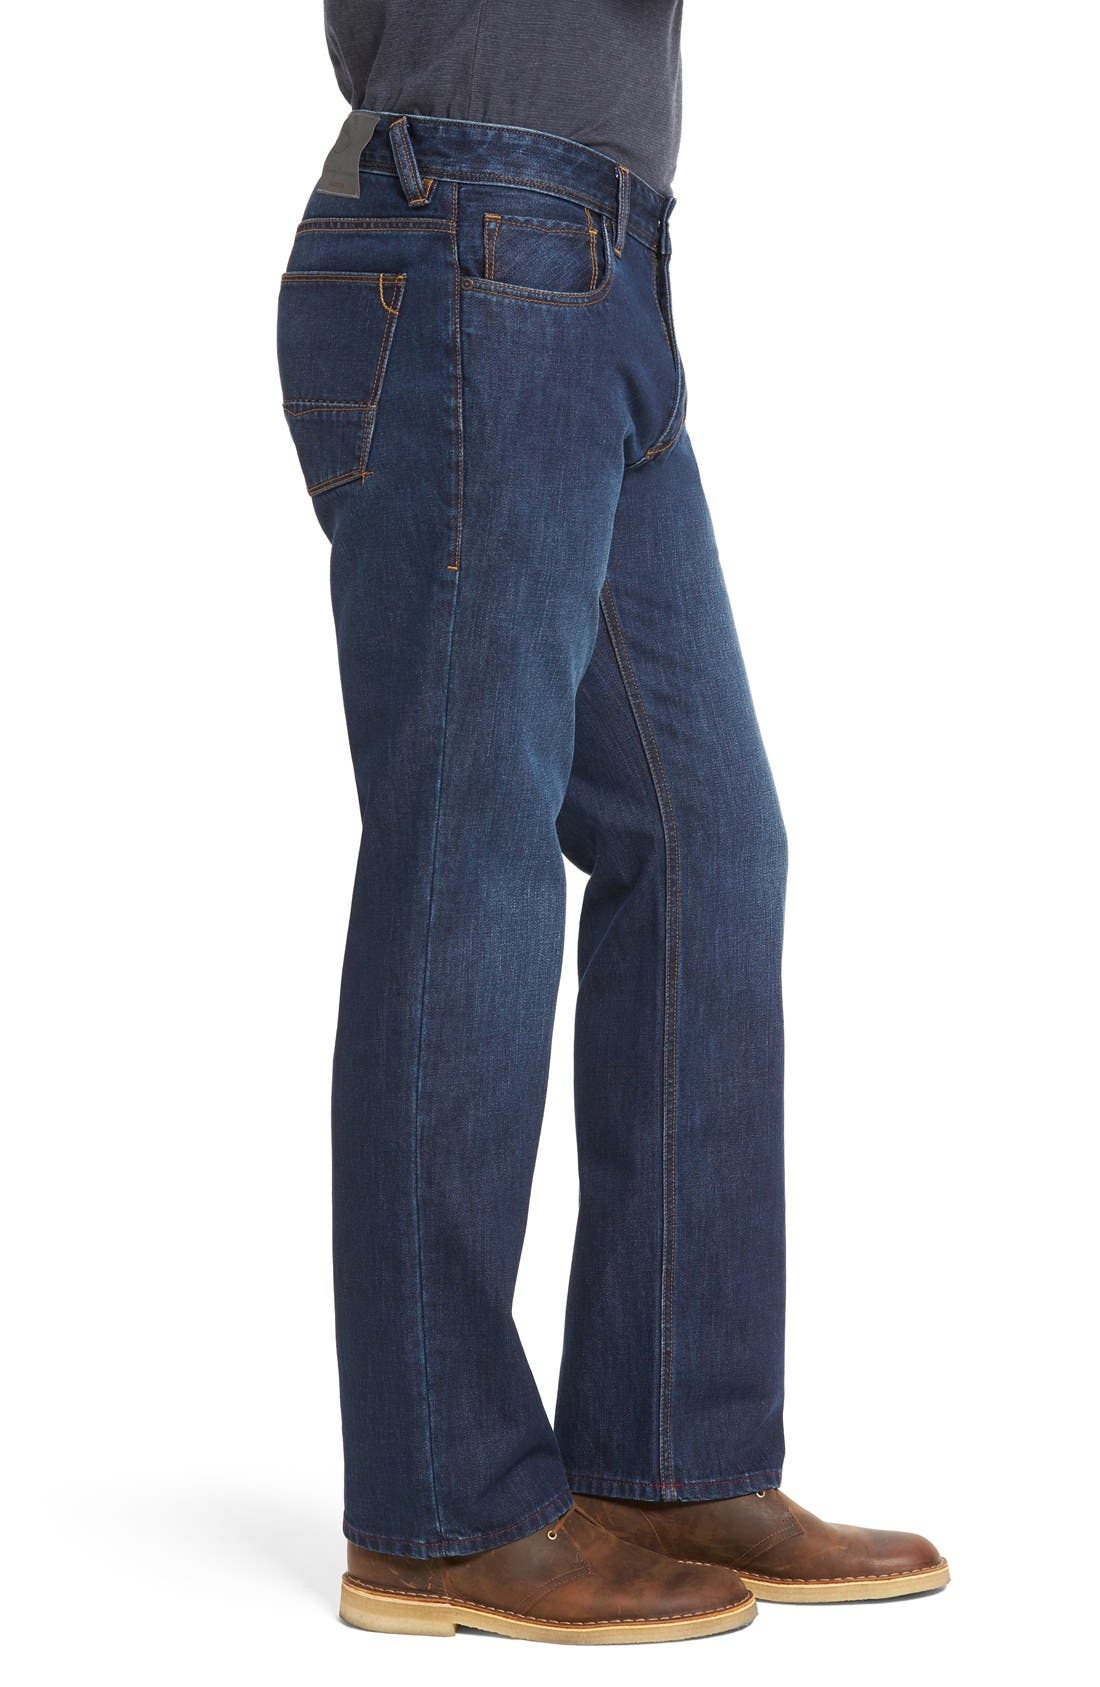 'Santorini' Relaxed Fit Jeans,                             Alternate thumbnail 3, color,                             Dark Indigo Wash